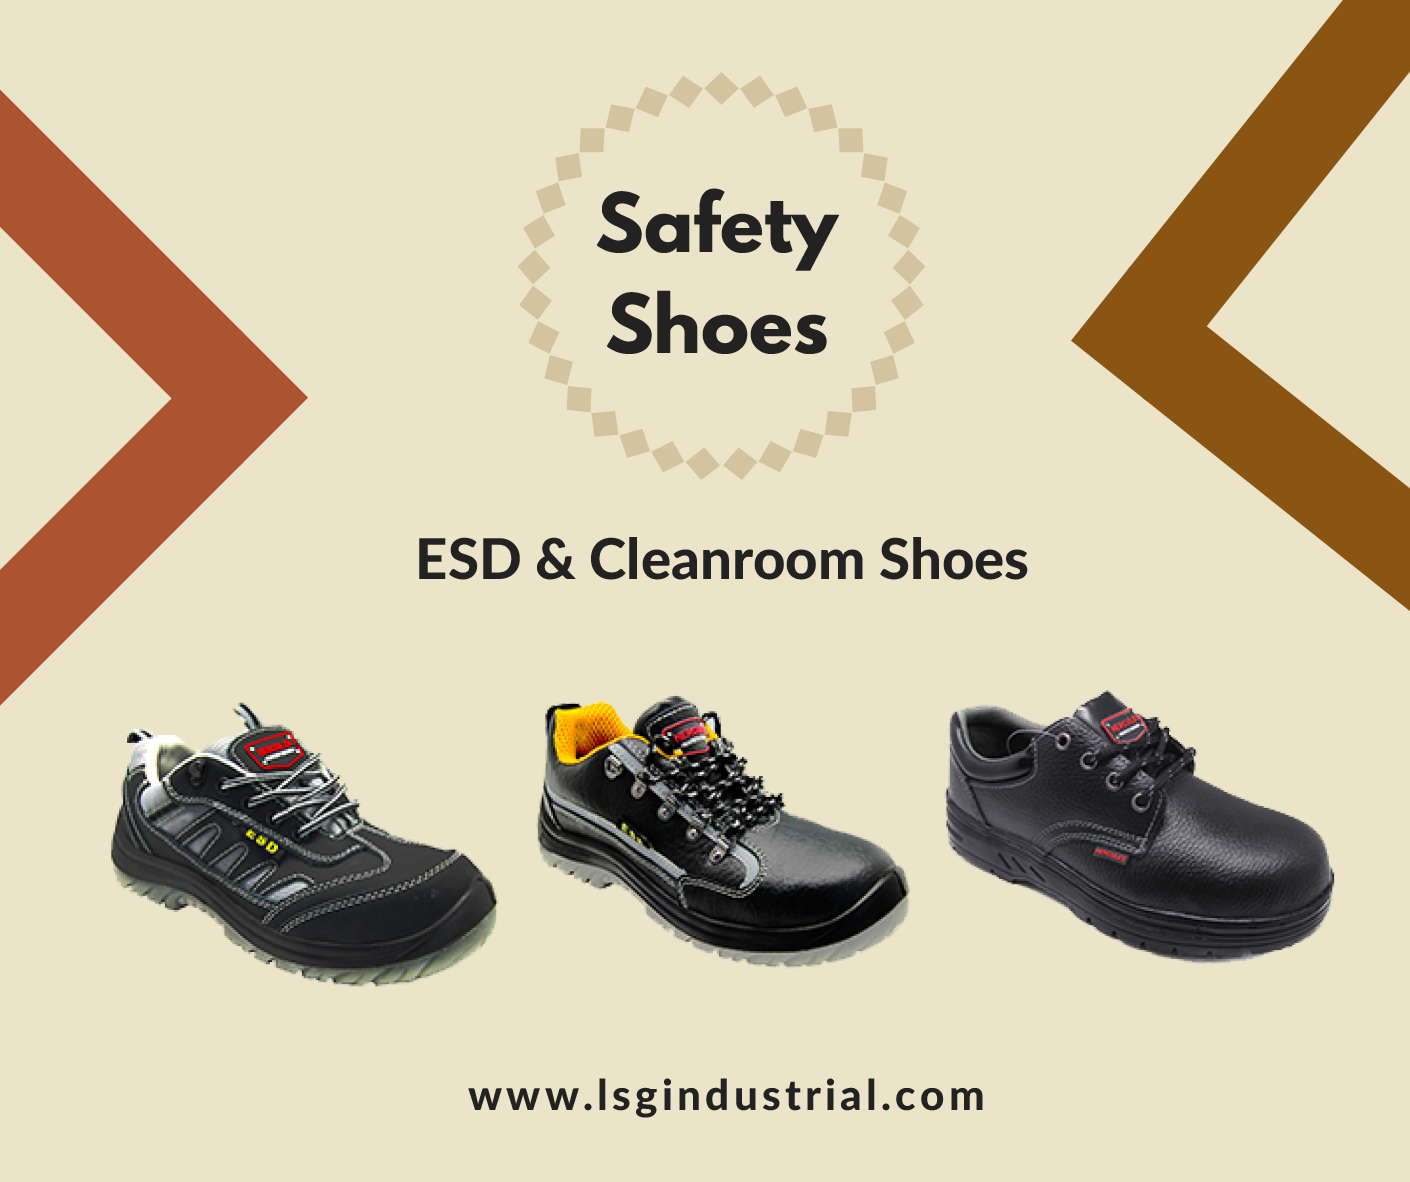 6d1b9866401 Hercules Safety Shoes are affordable